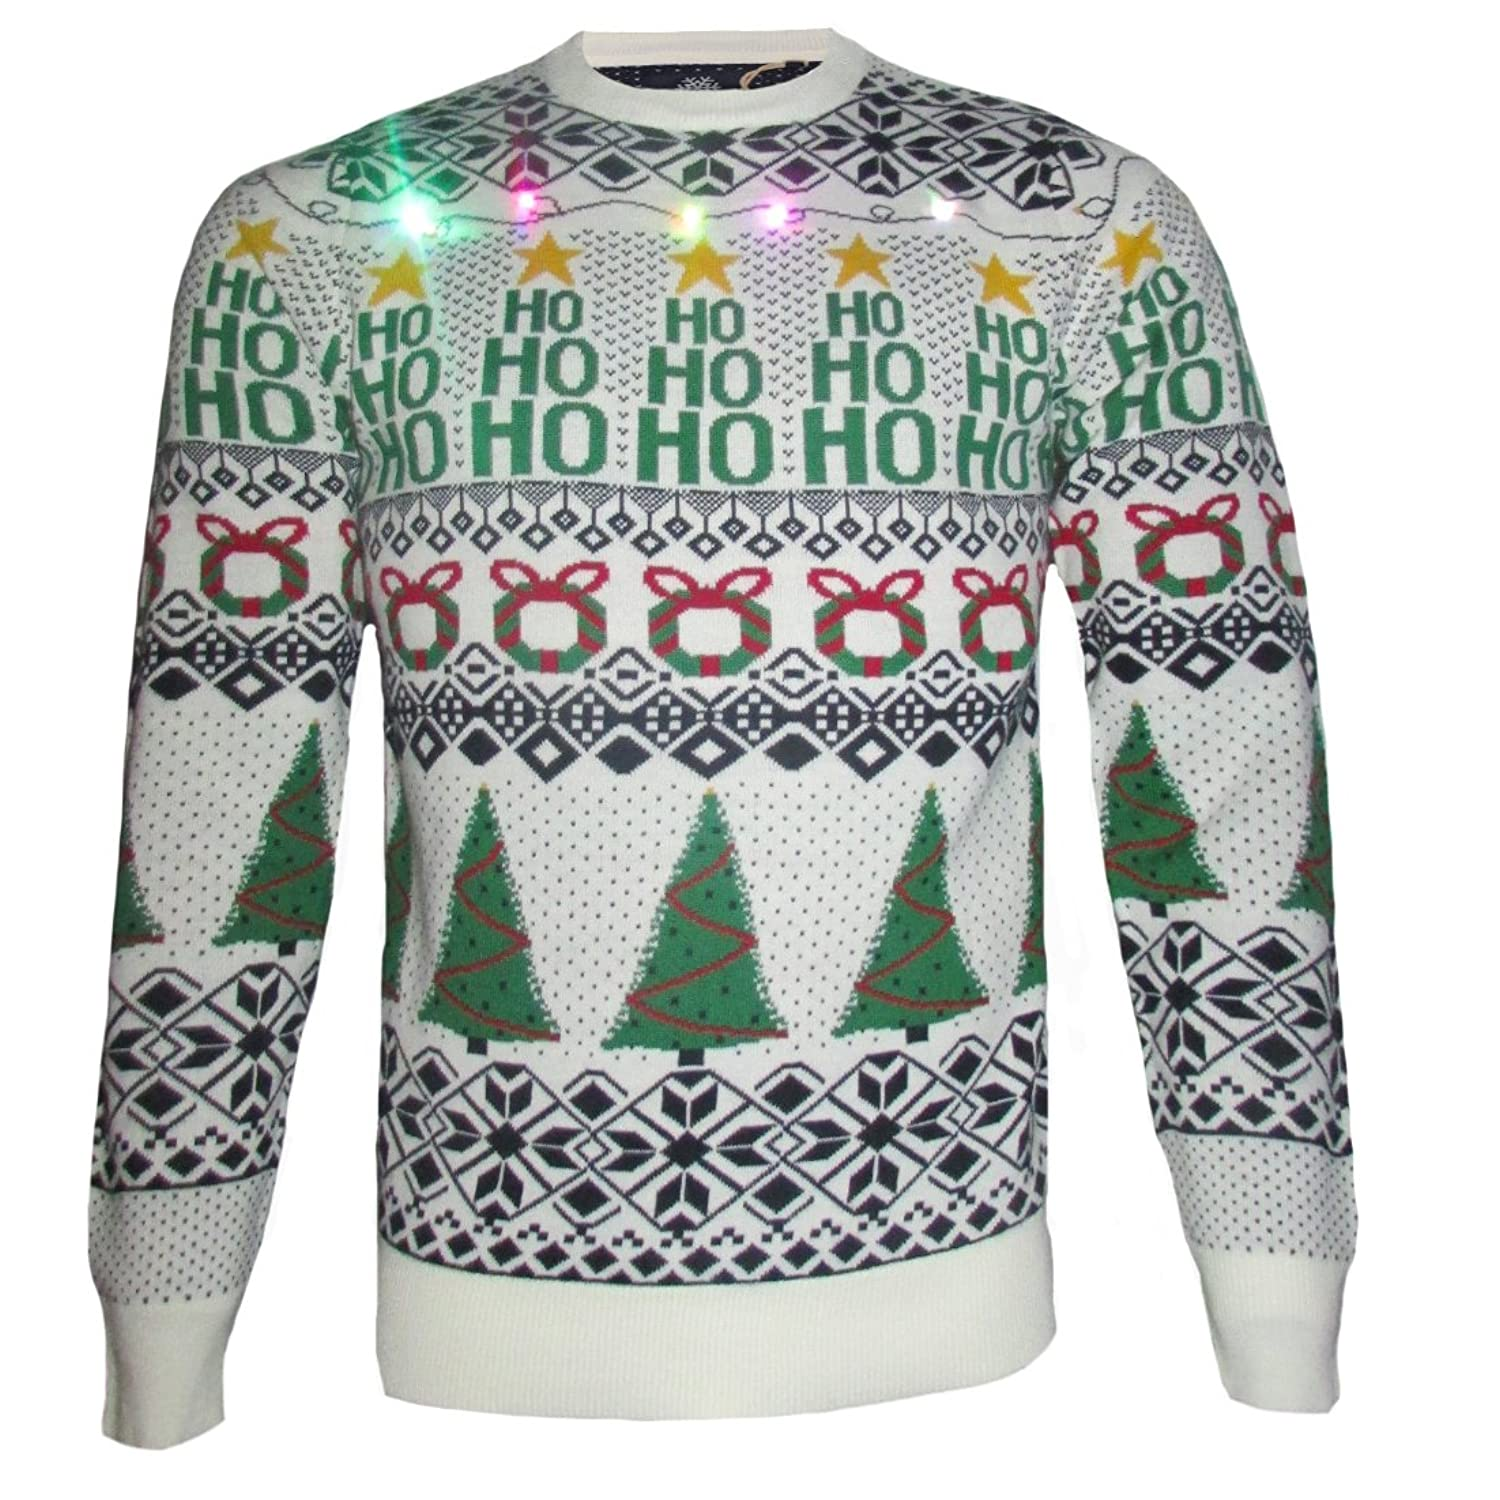 Mens Threadbare Xmas Jumper LED Light Up Novelty Knit Snowman Christmas Sweater Top